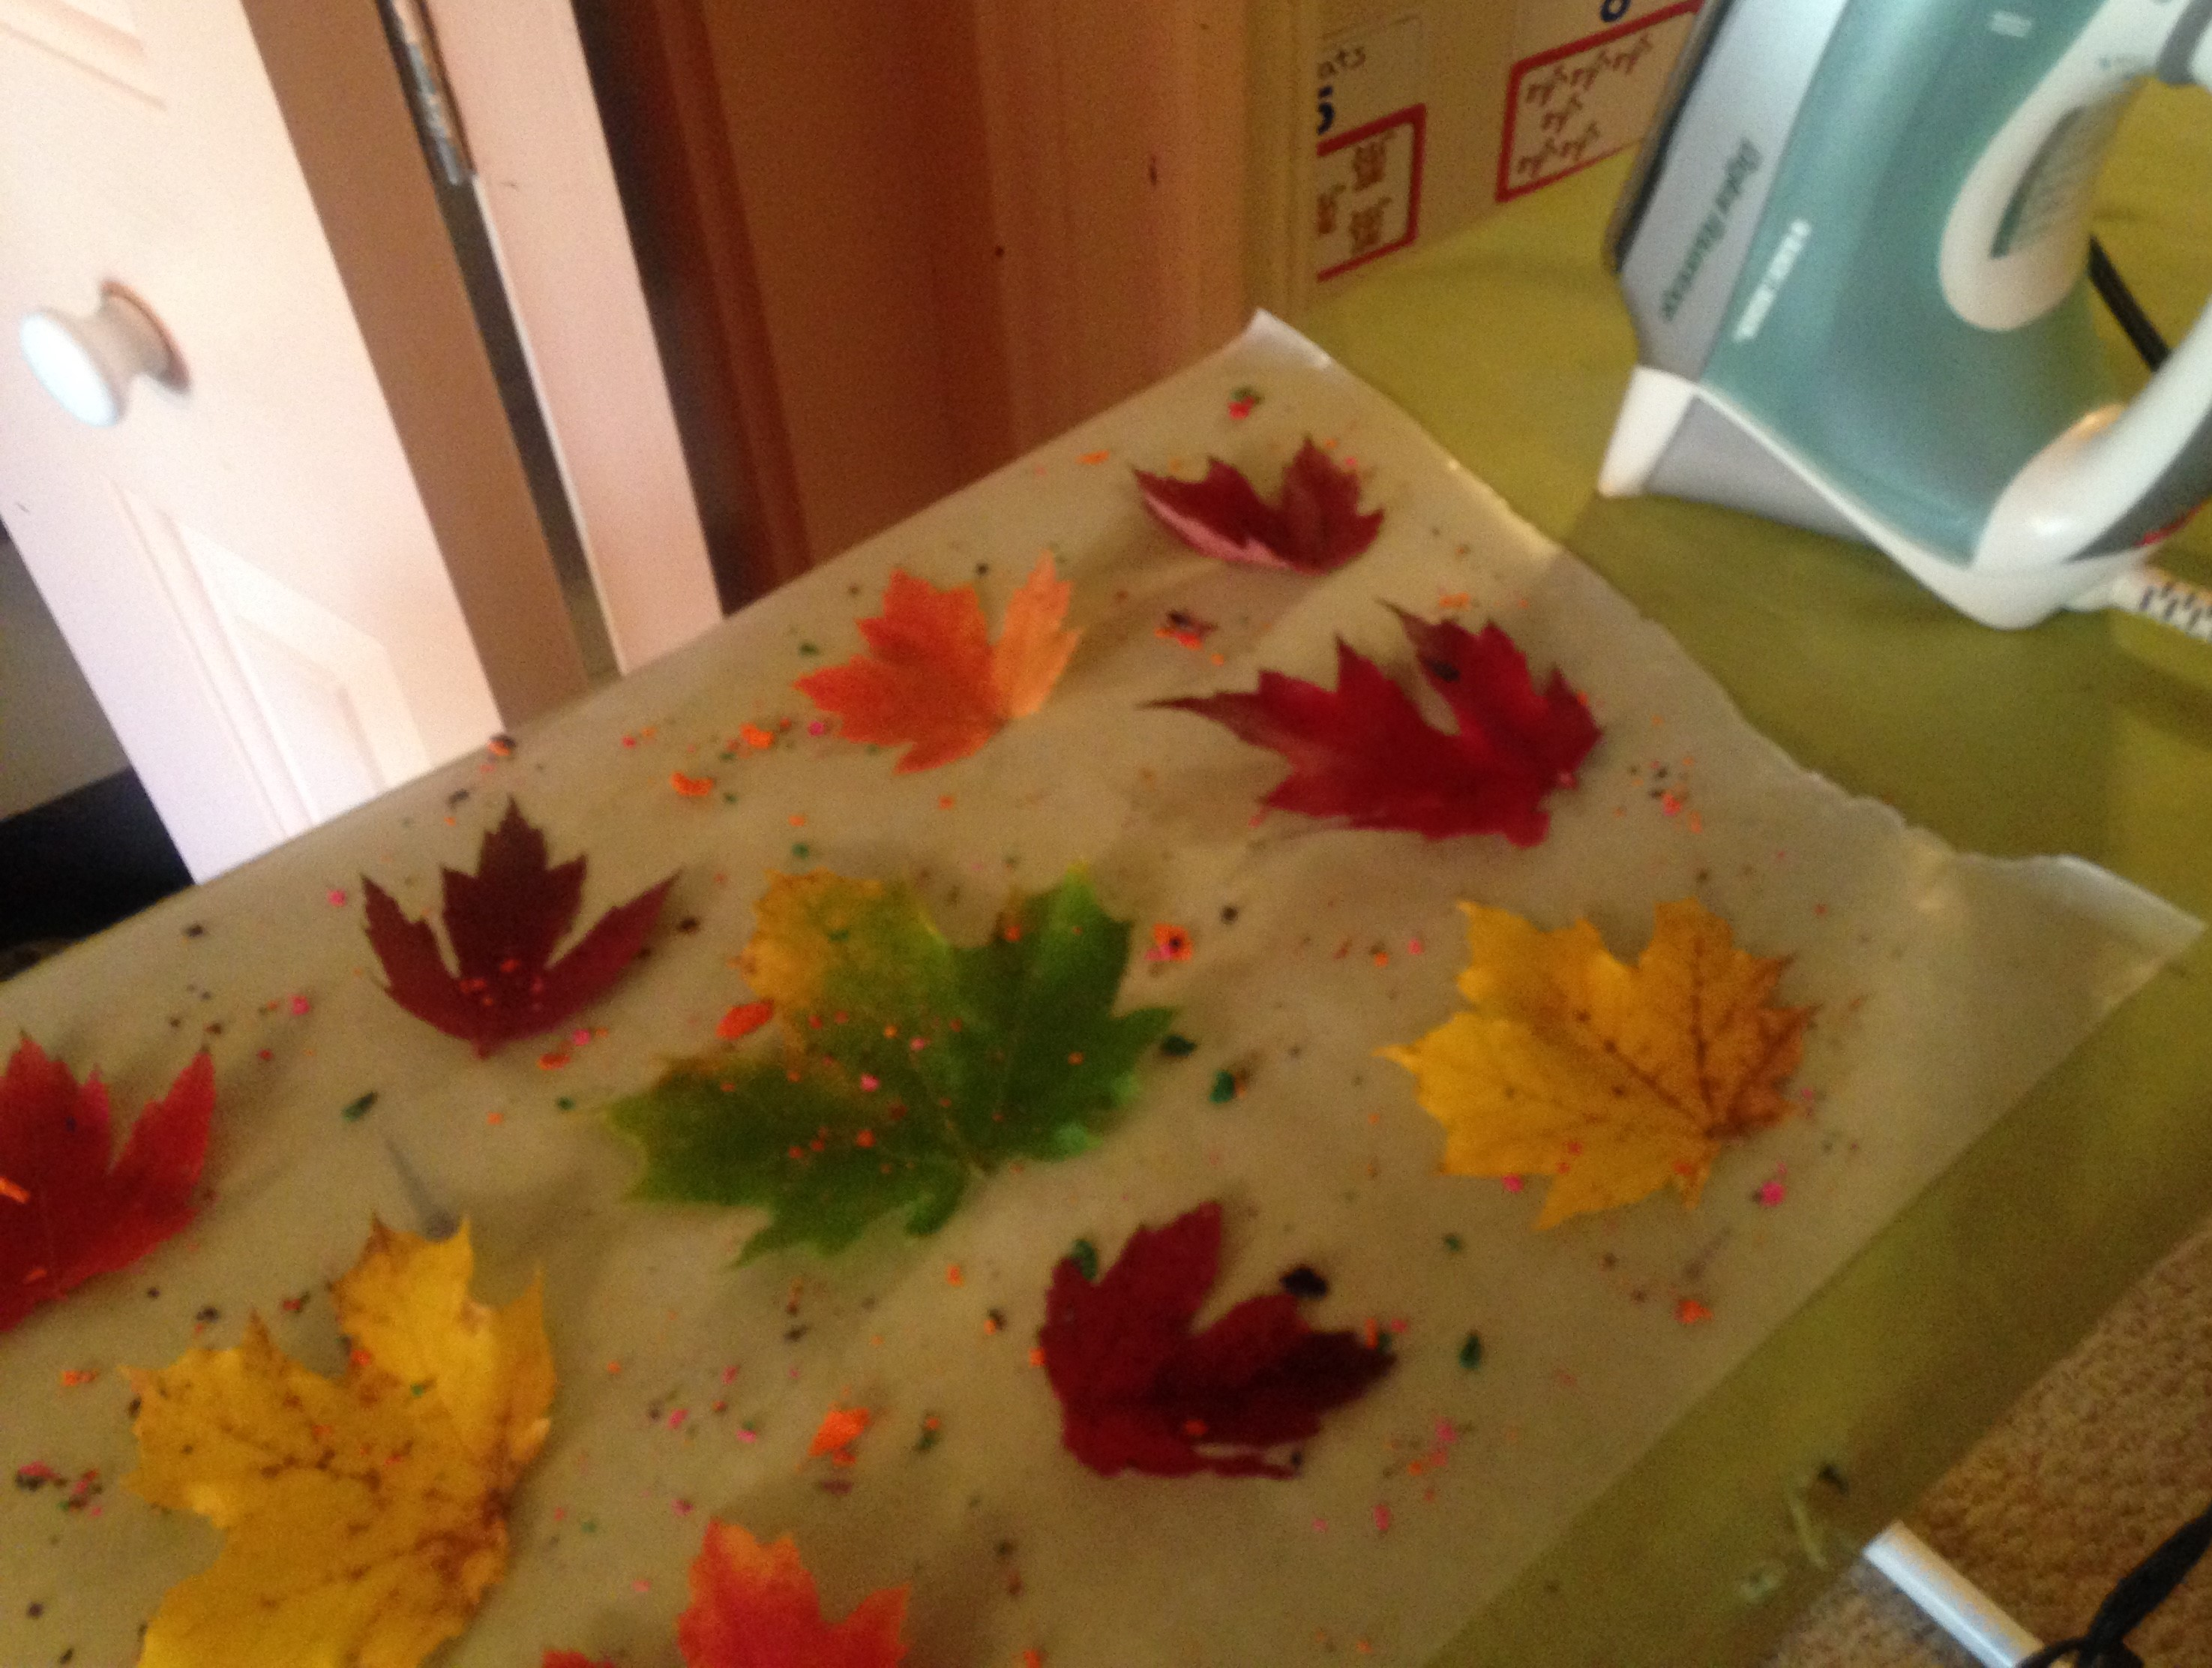 Crayon Sprinkles on Leaves and Wax Paper